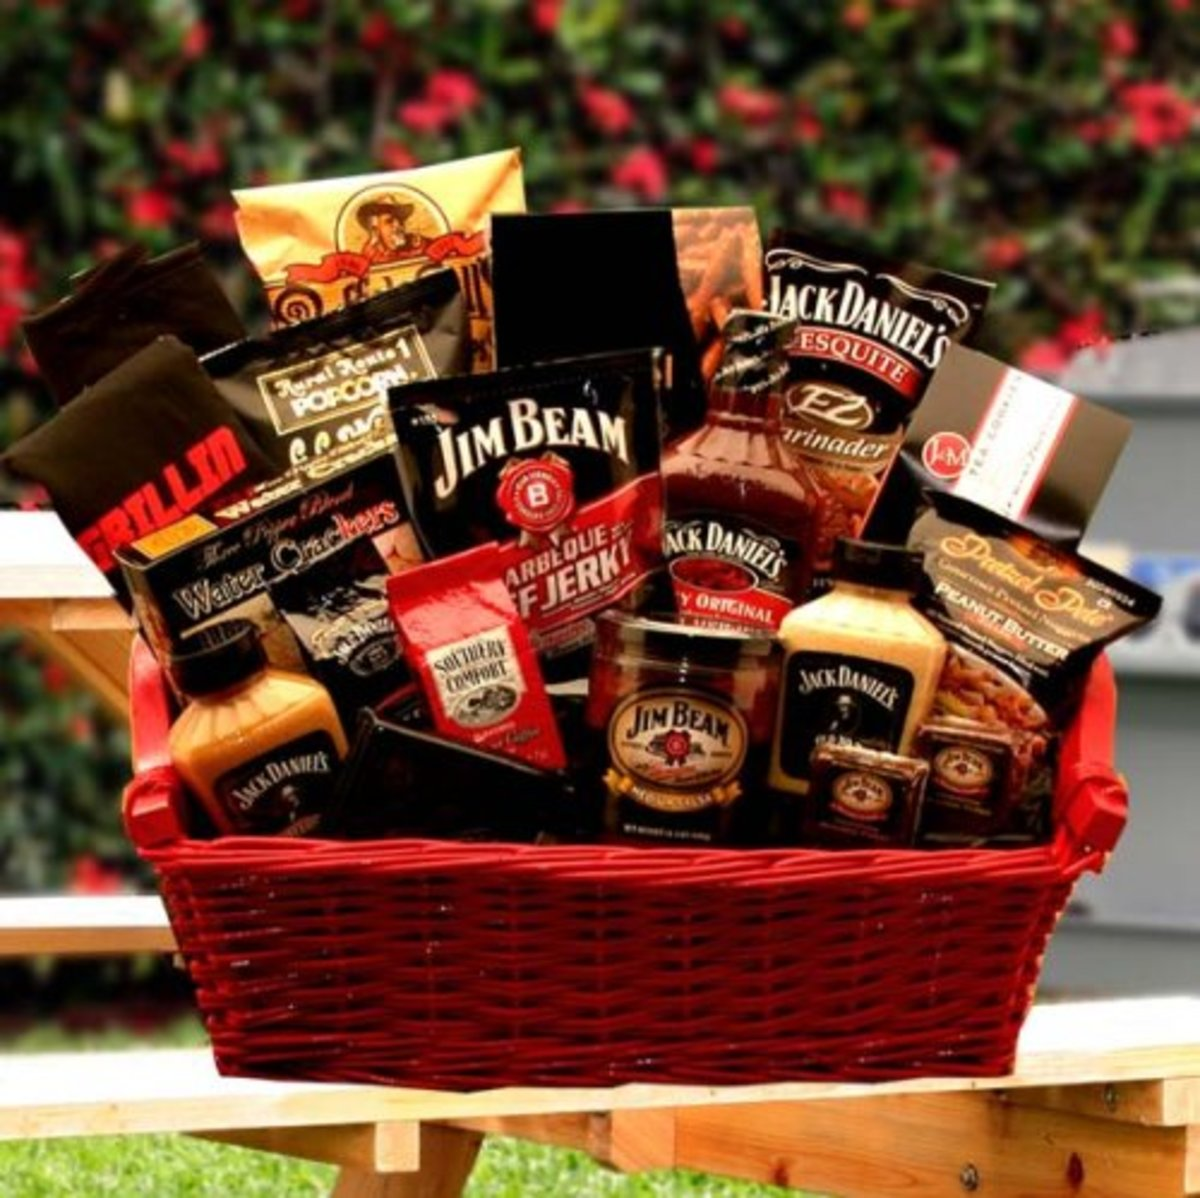 Gift baskets for men make great Valentine's gifts for him!